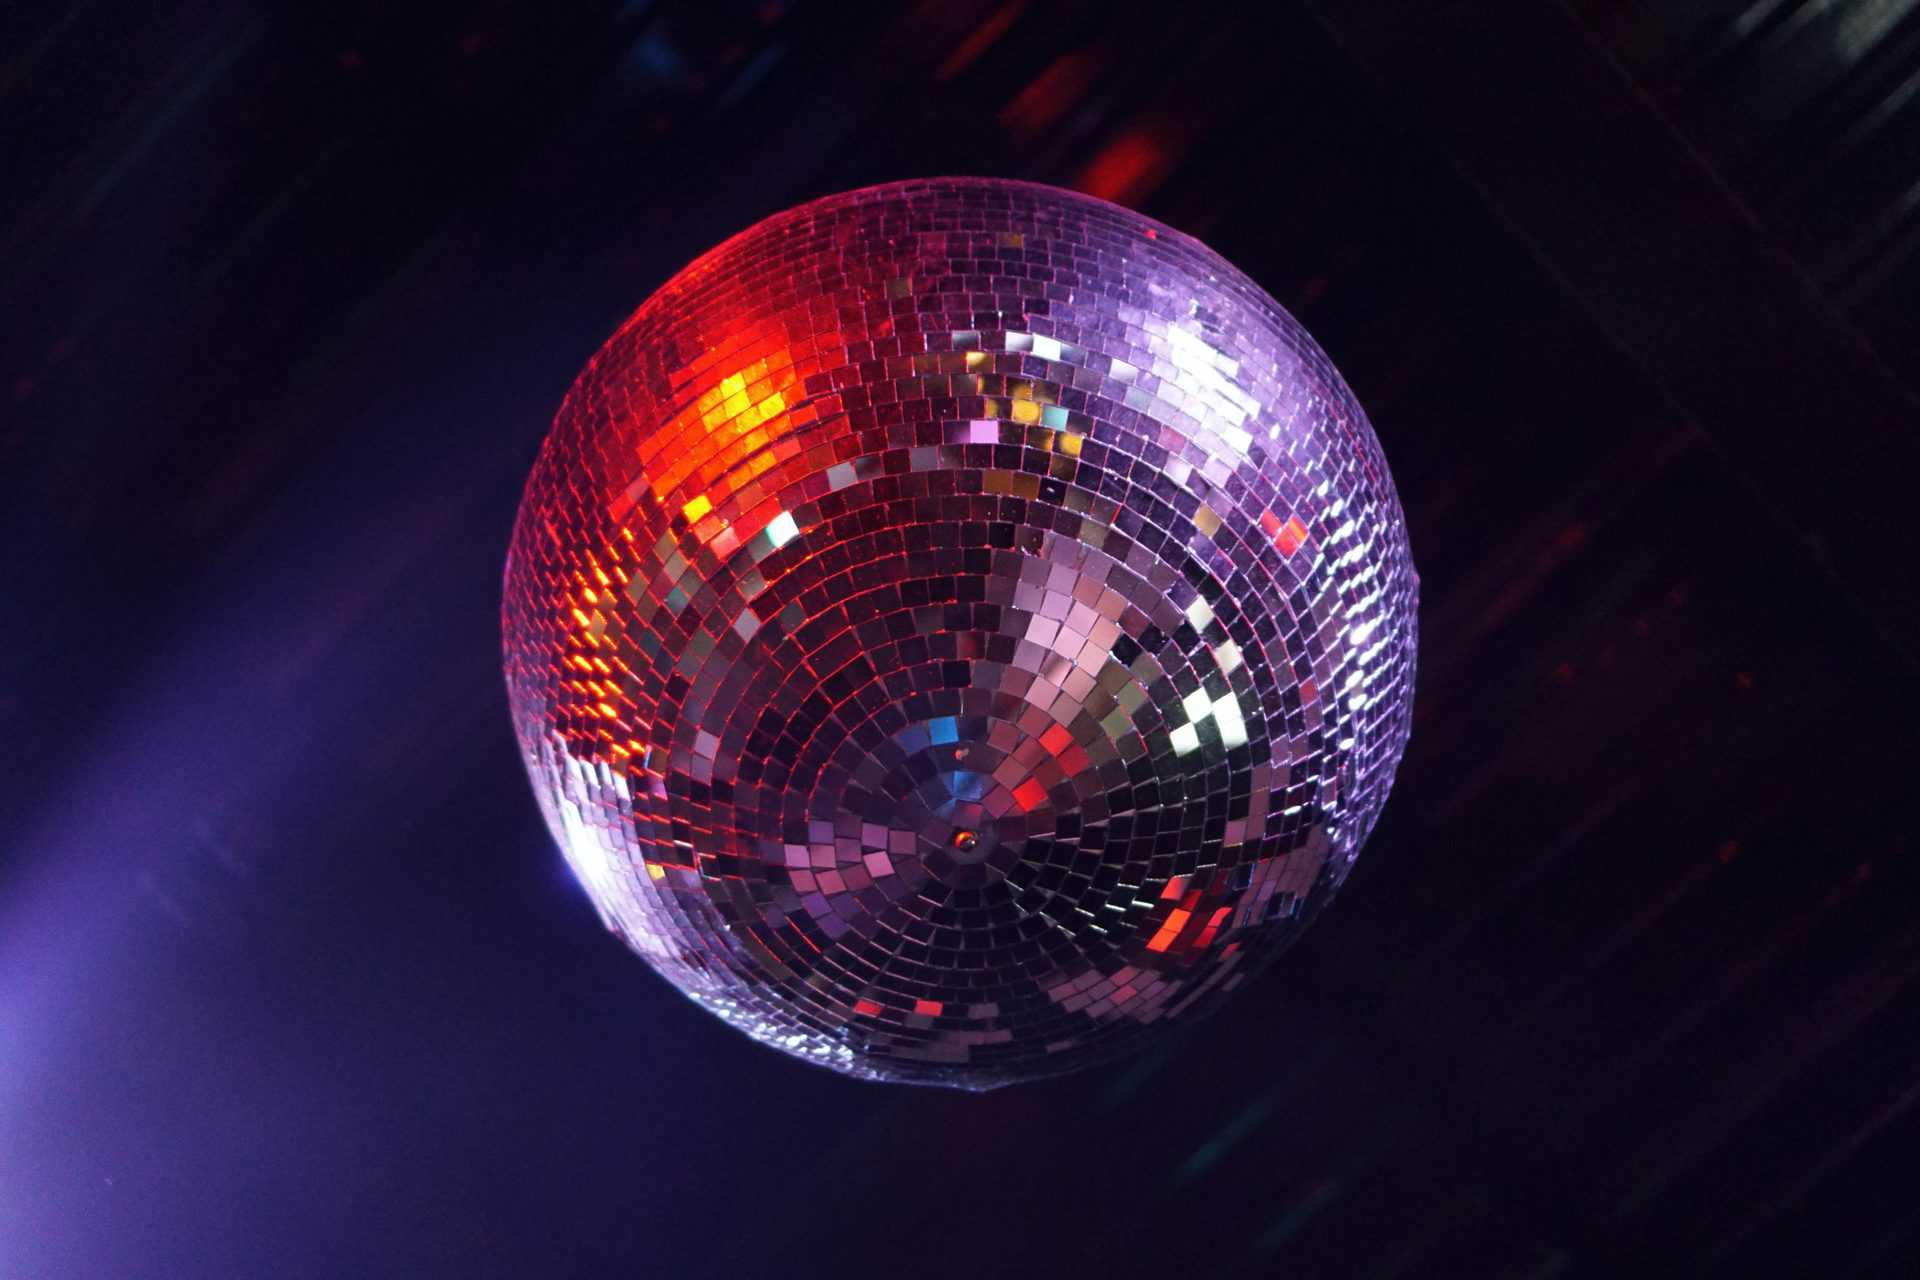 Strictly Come Dancing returns for its 19th series